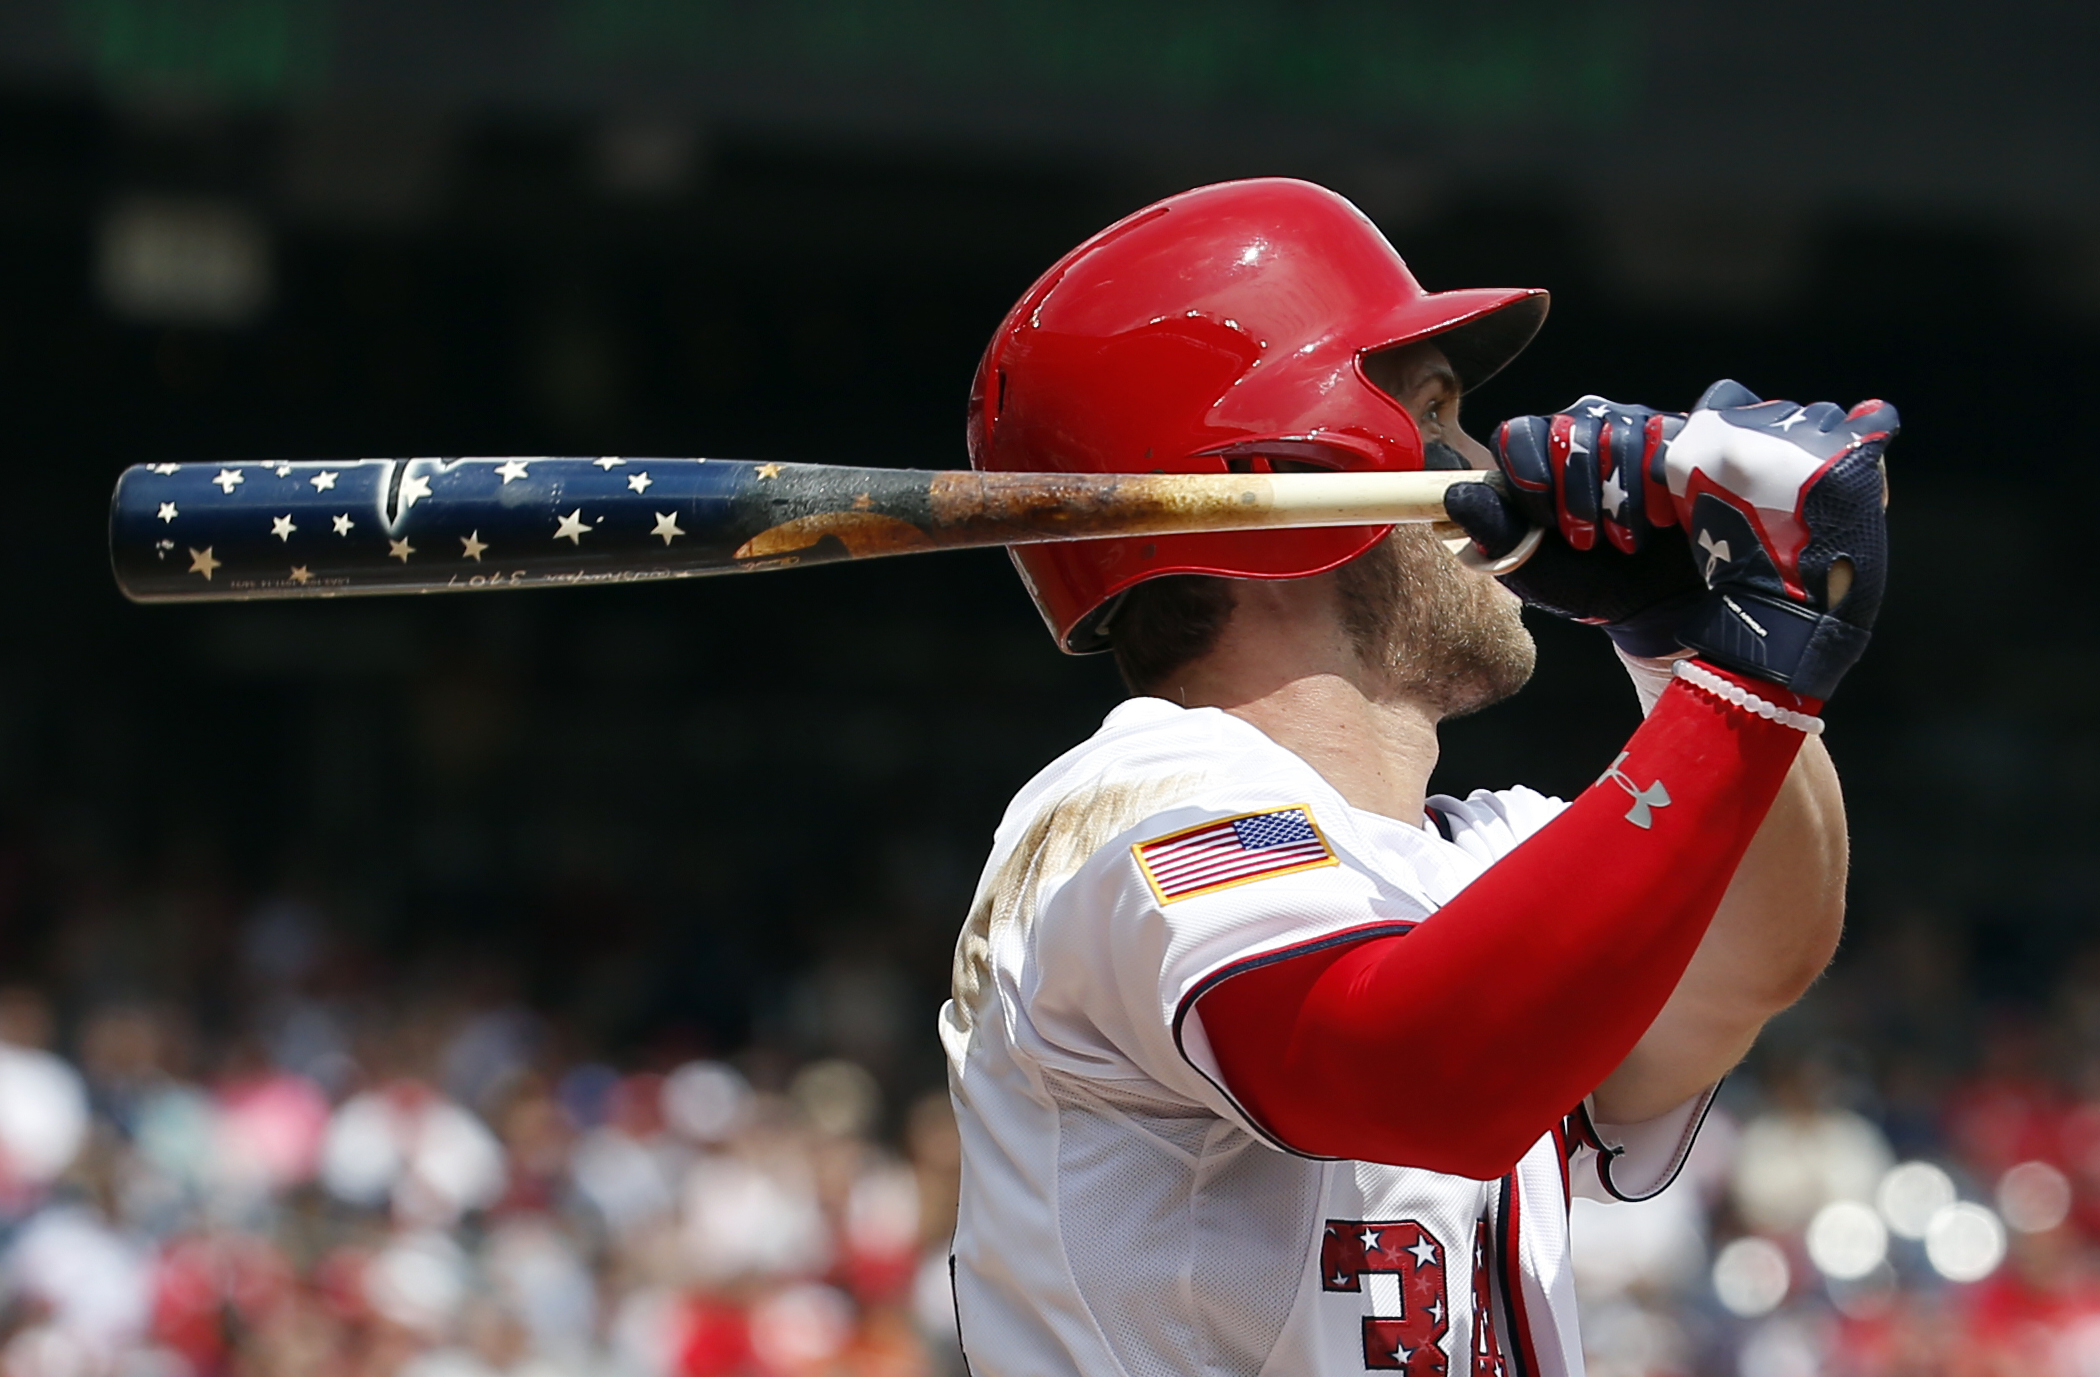 Washington Nationals' Bryce Harper (34) watches his two-run homer as he holds his Independence Day themed bat during the first inning of a baseball game against the San Francisco Giants at Nationals Park, Saturday, July 4, 2015, in Washington. (AP Photo/A